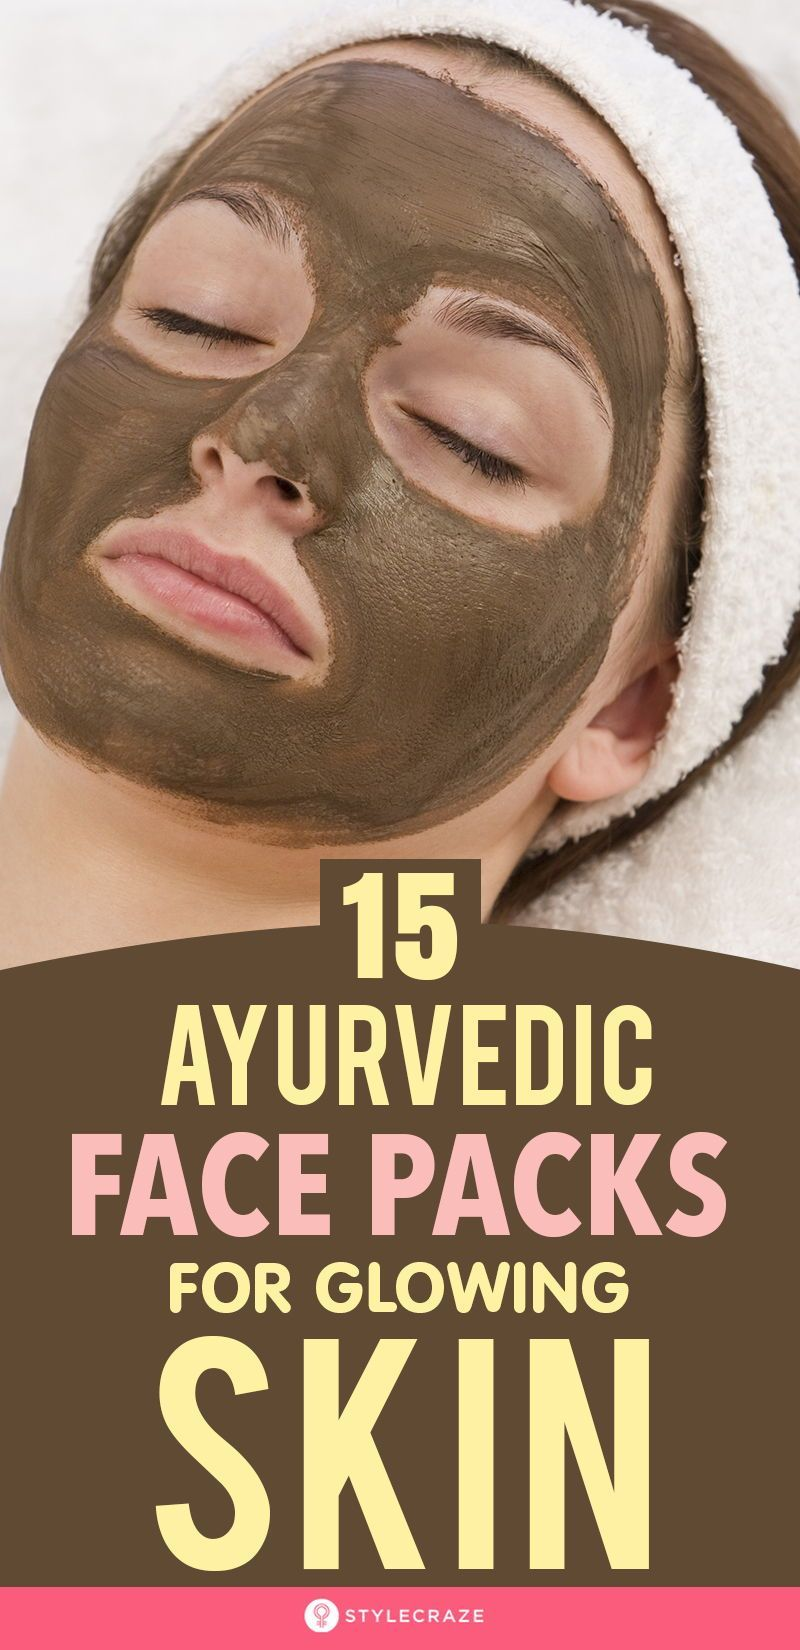 12 Effective Ayurvedic Face Packs For Glowing Skin: Ayurveda is